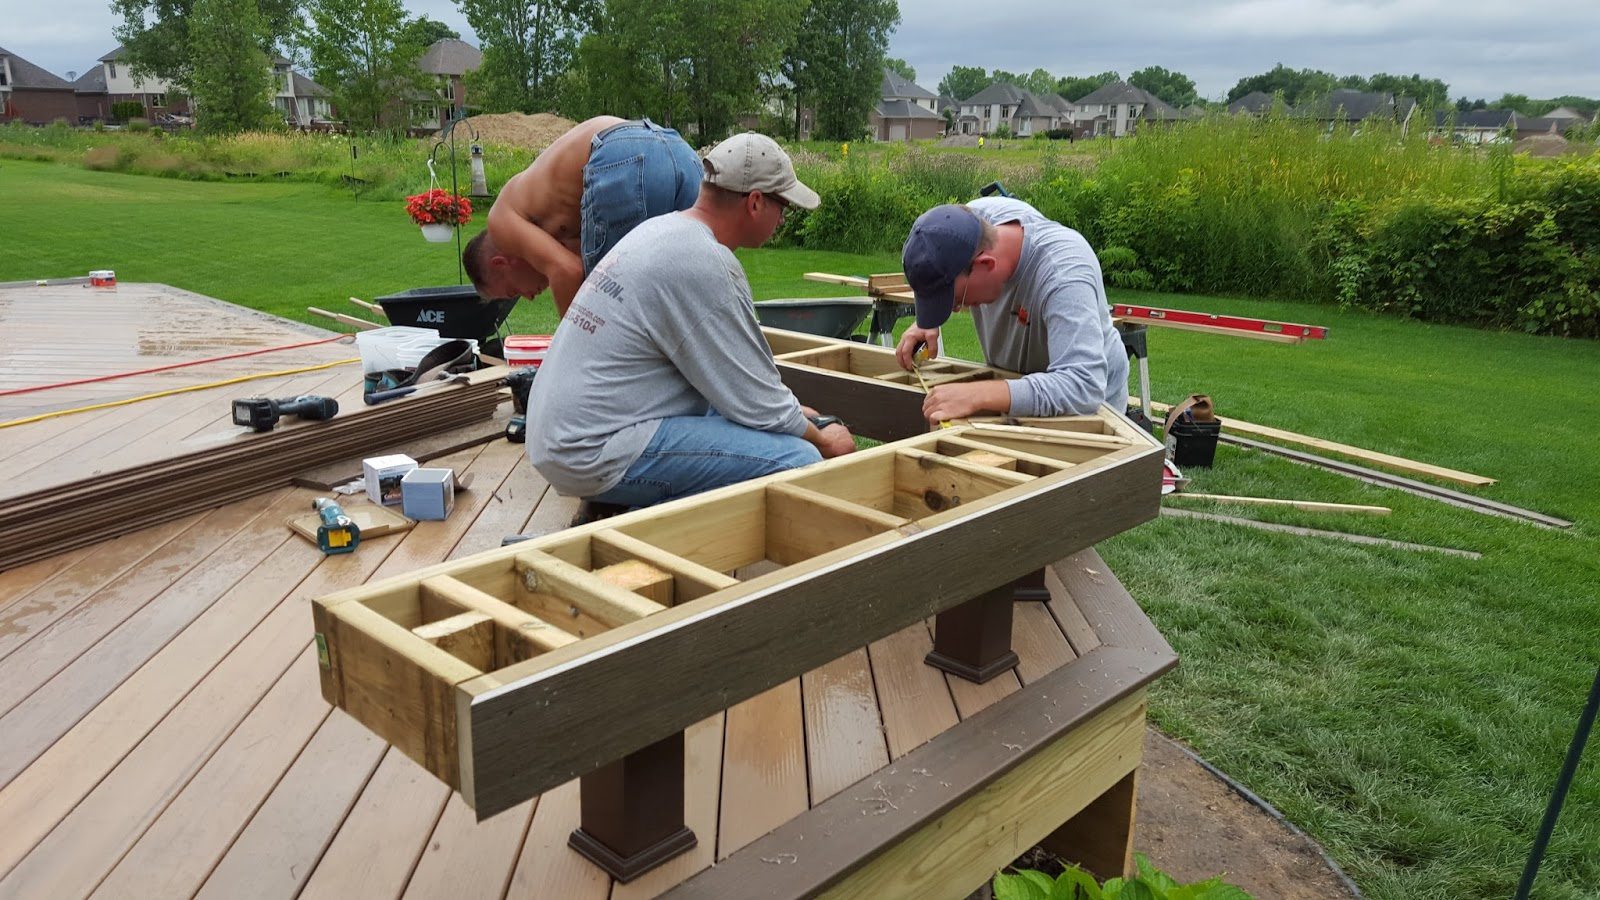 Outdoor living how to build a low to the ground deck part 2 for Building a composite deck